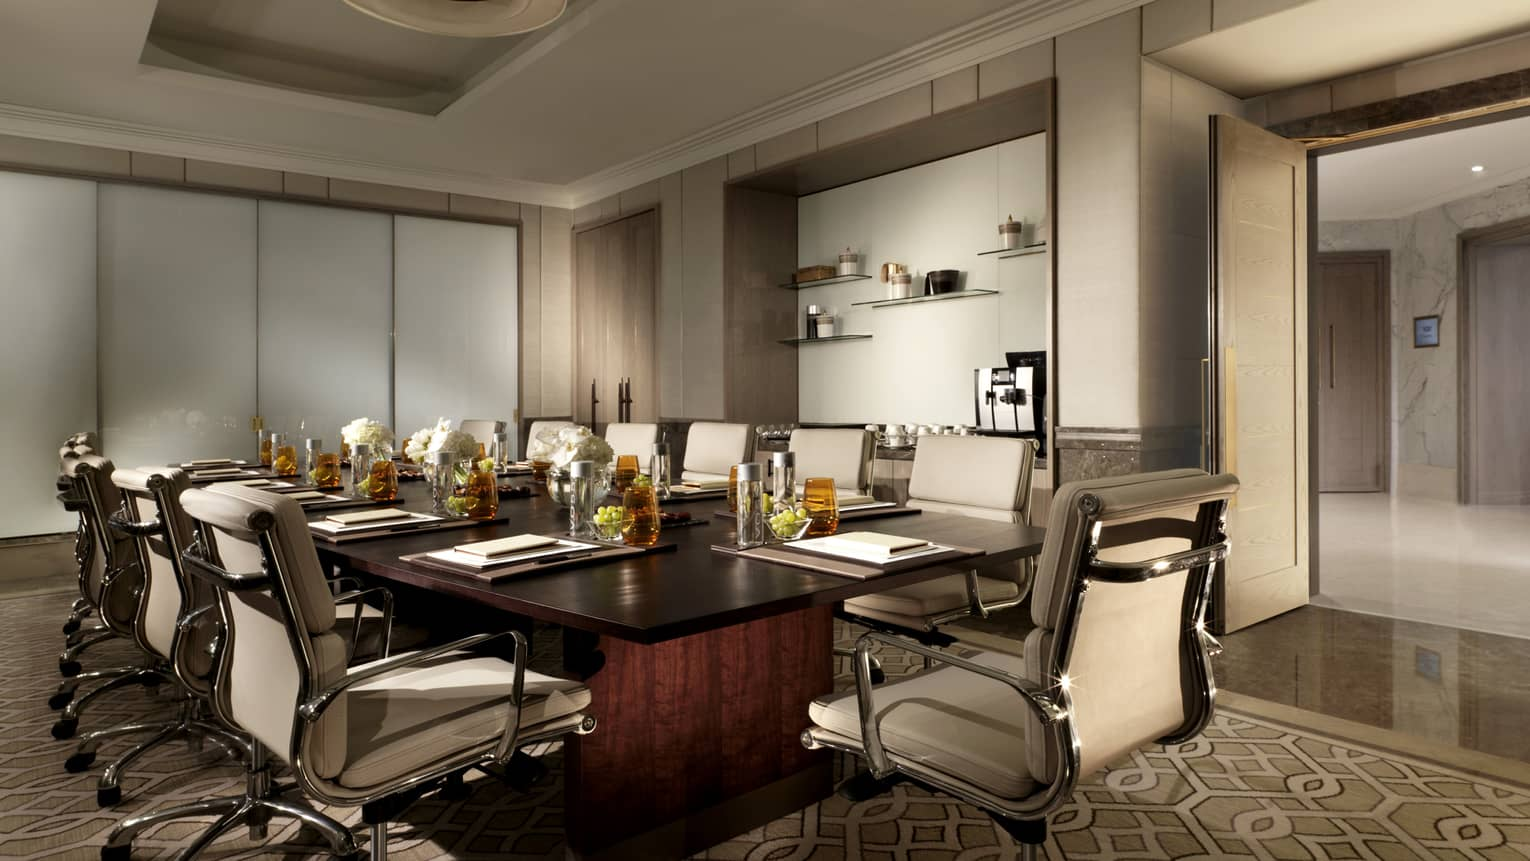 Meeting room with white leather executive swivel chairs around large wood boardroom table with amber glassware